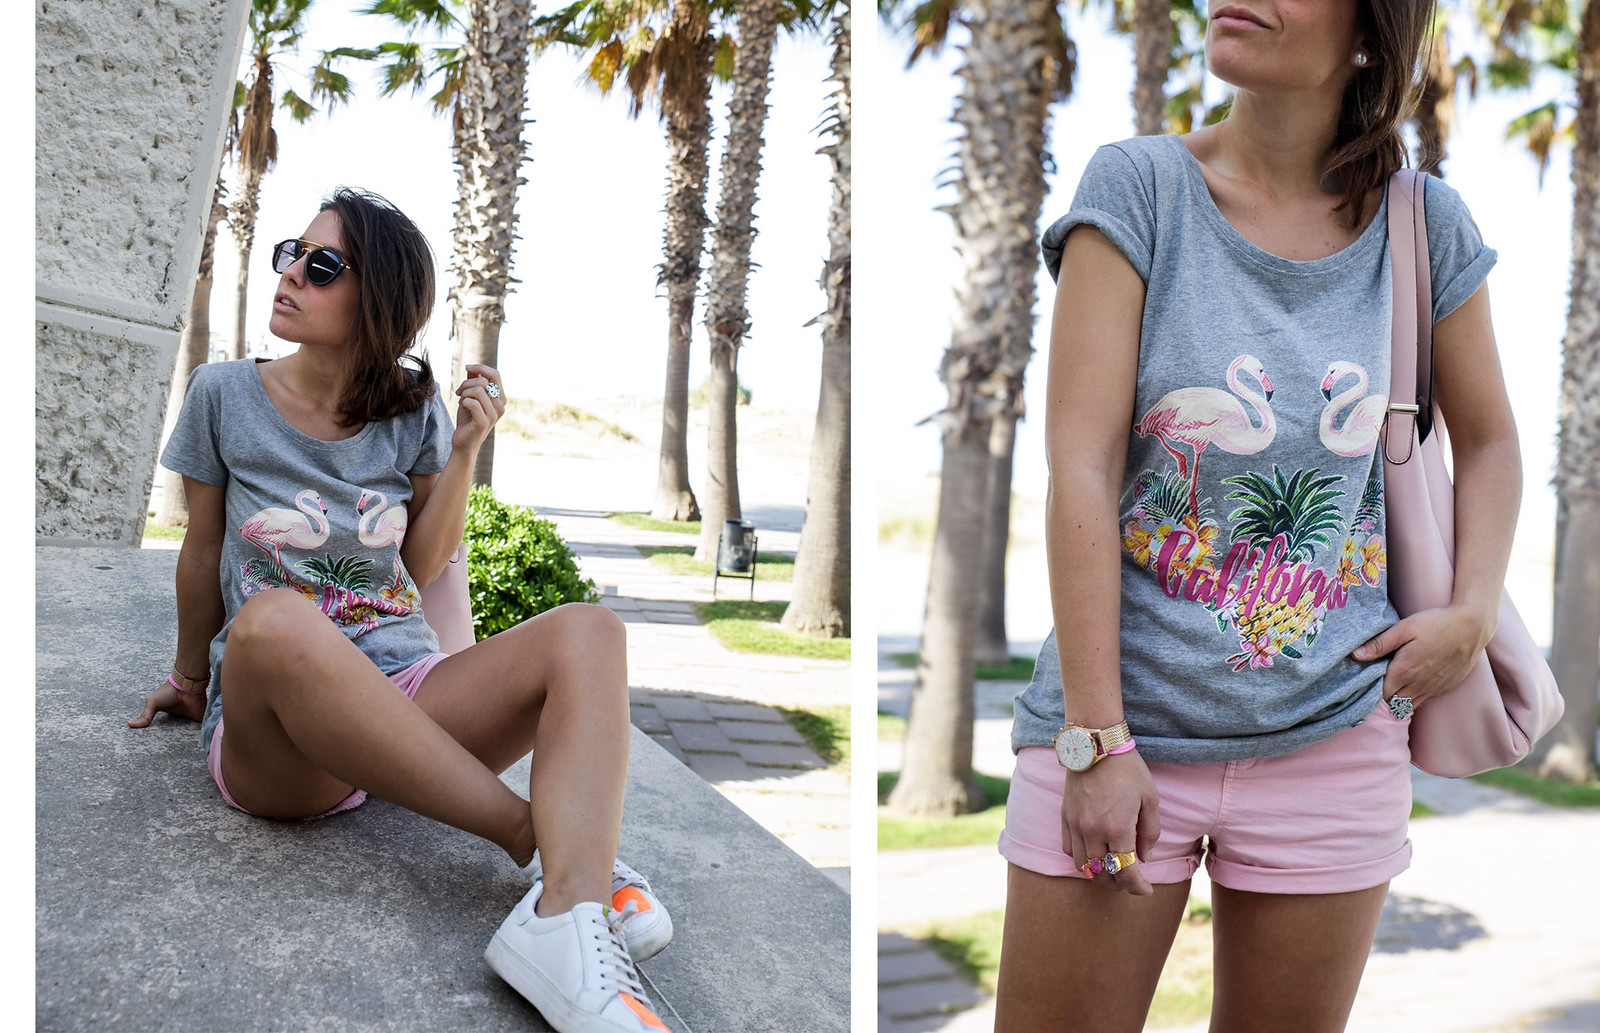 03_California_girl_rüga_shirt_flamingos_theguestgirl_LA_Barcelona_beach